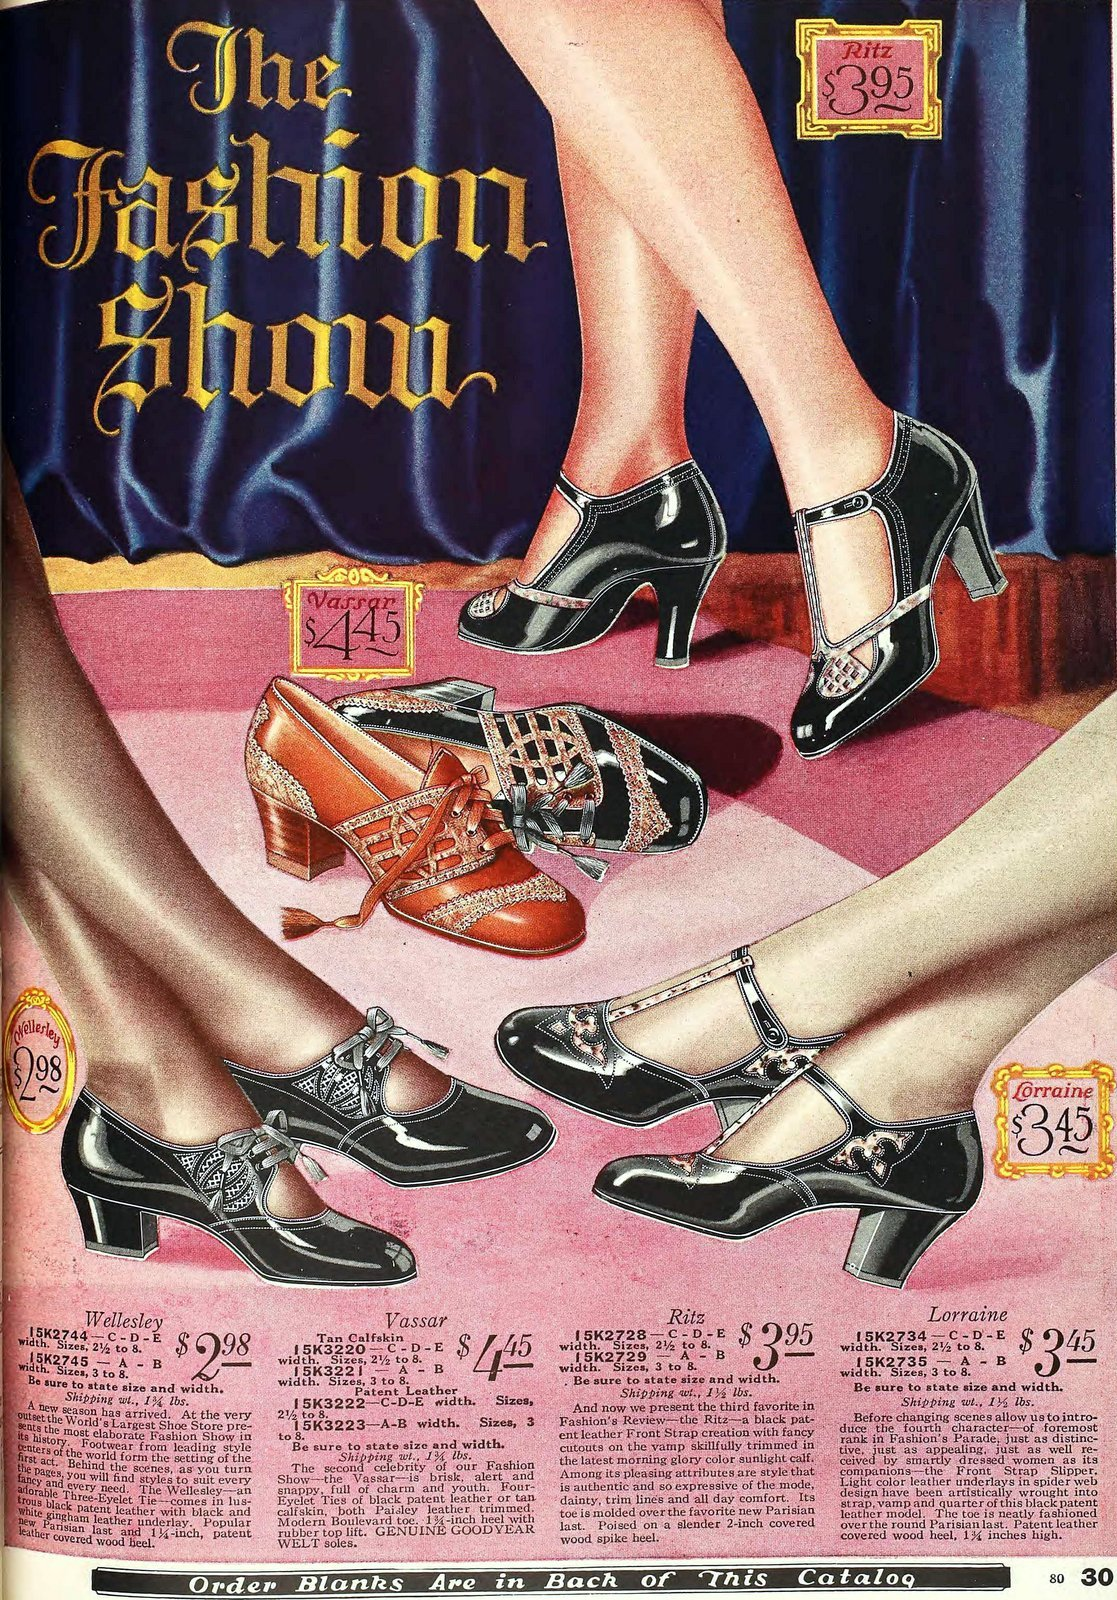 Vintage 1920s shoes for women from 1927